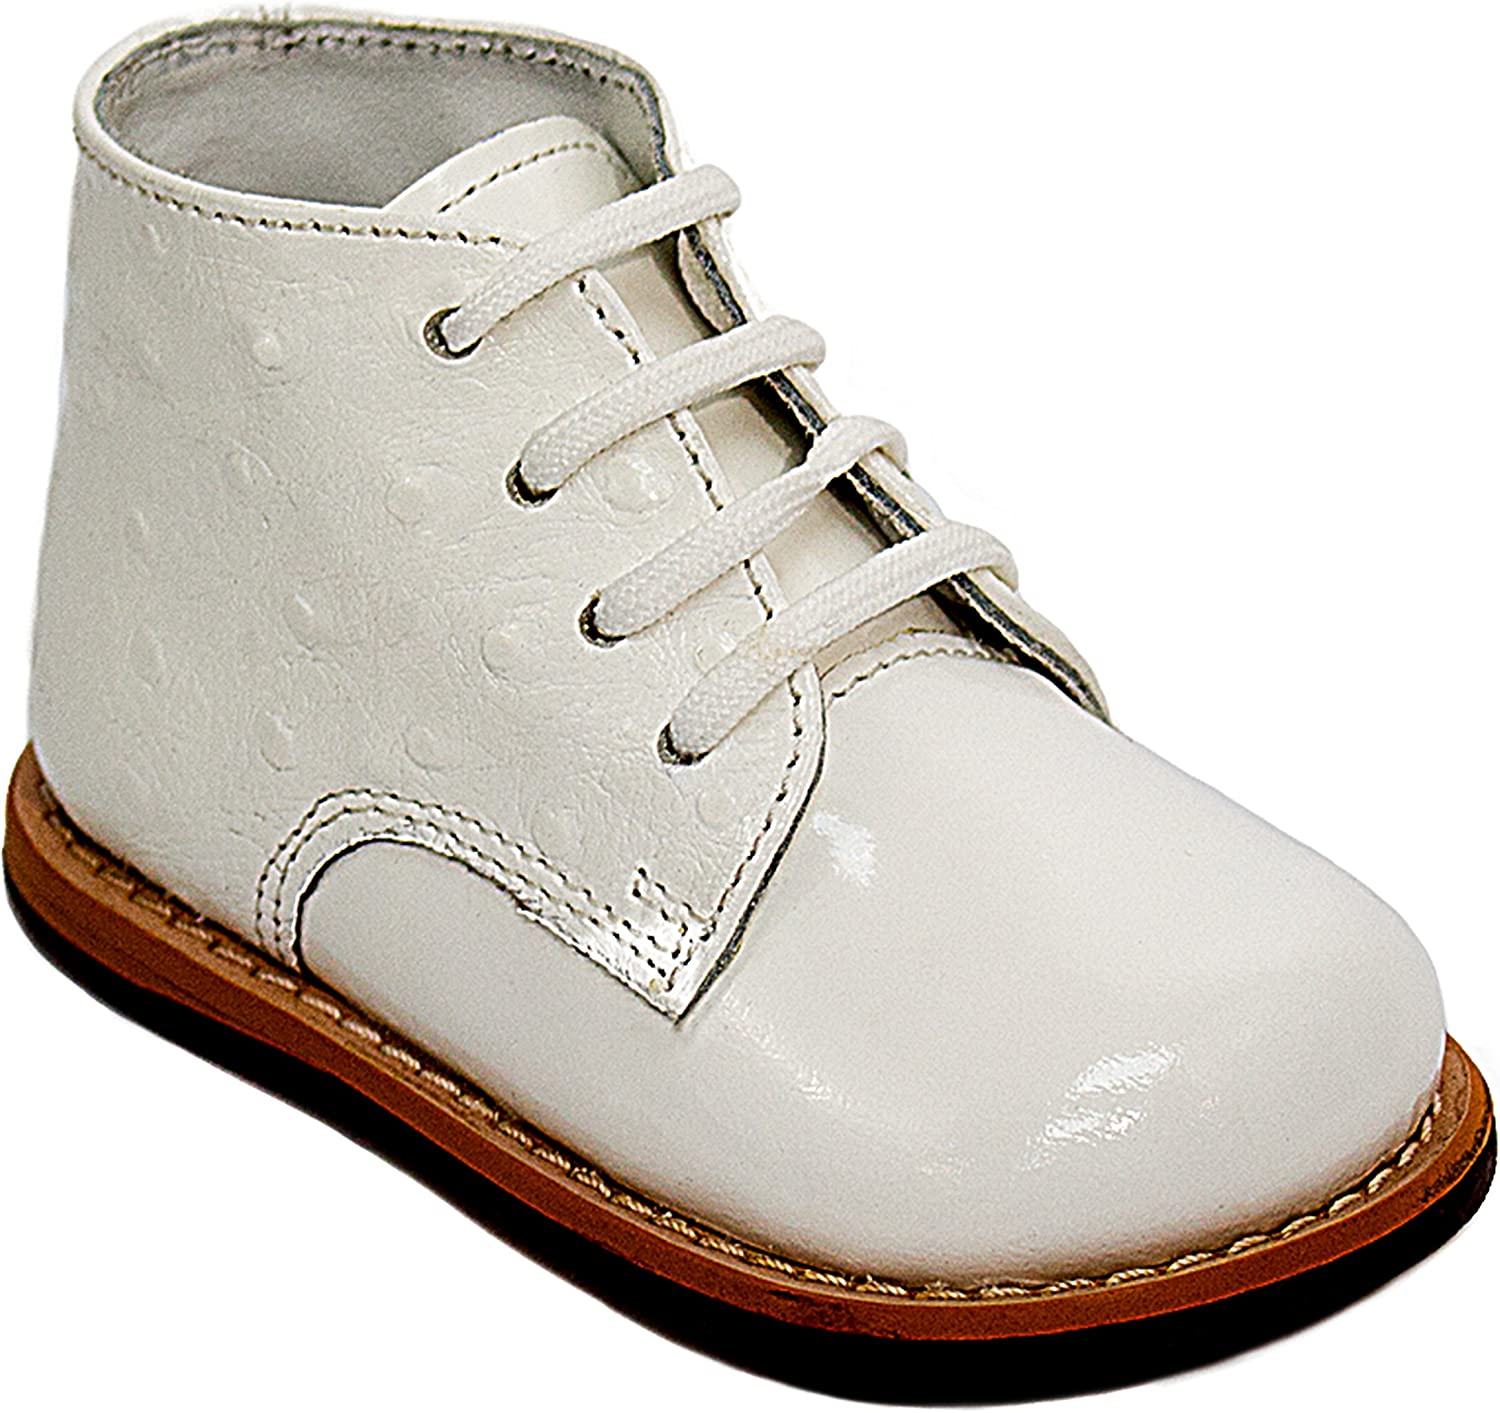 8190POA Josmo 2-8 Patent Ostrich Walking Shoes Burgundy Patent Ostrich, 4.5